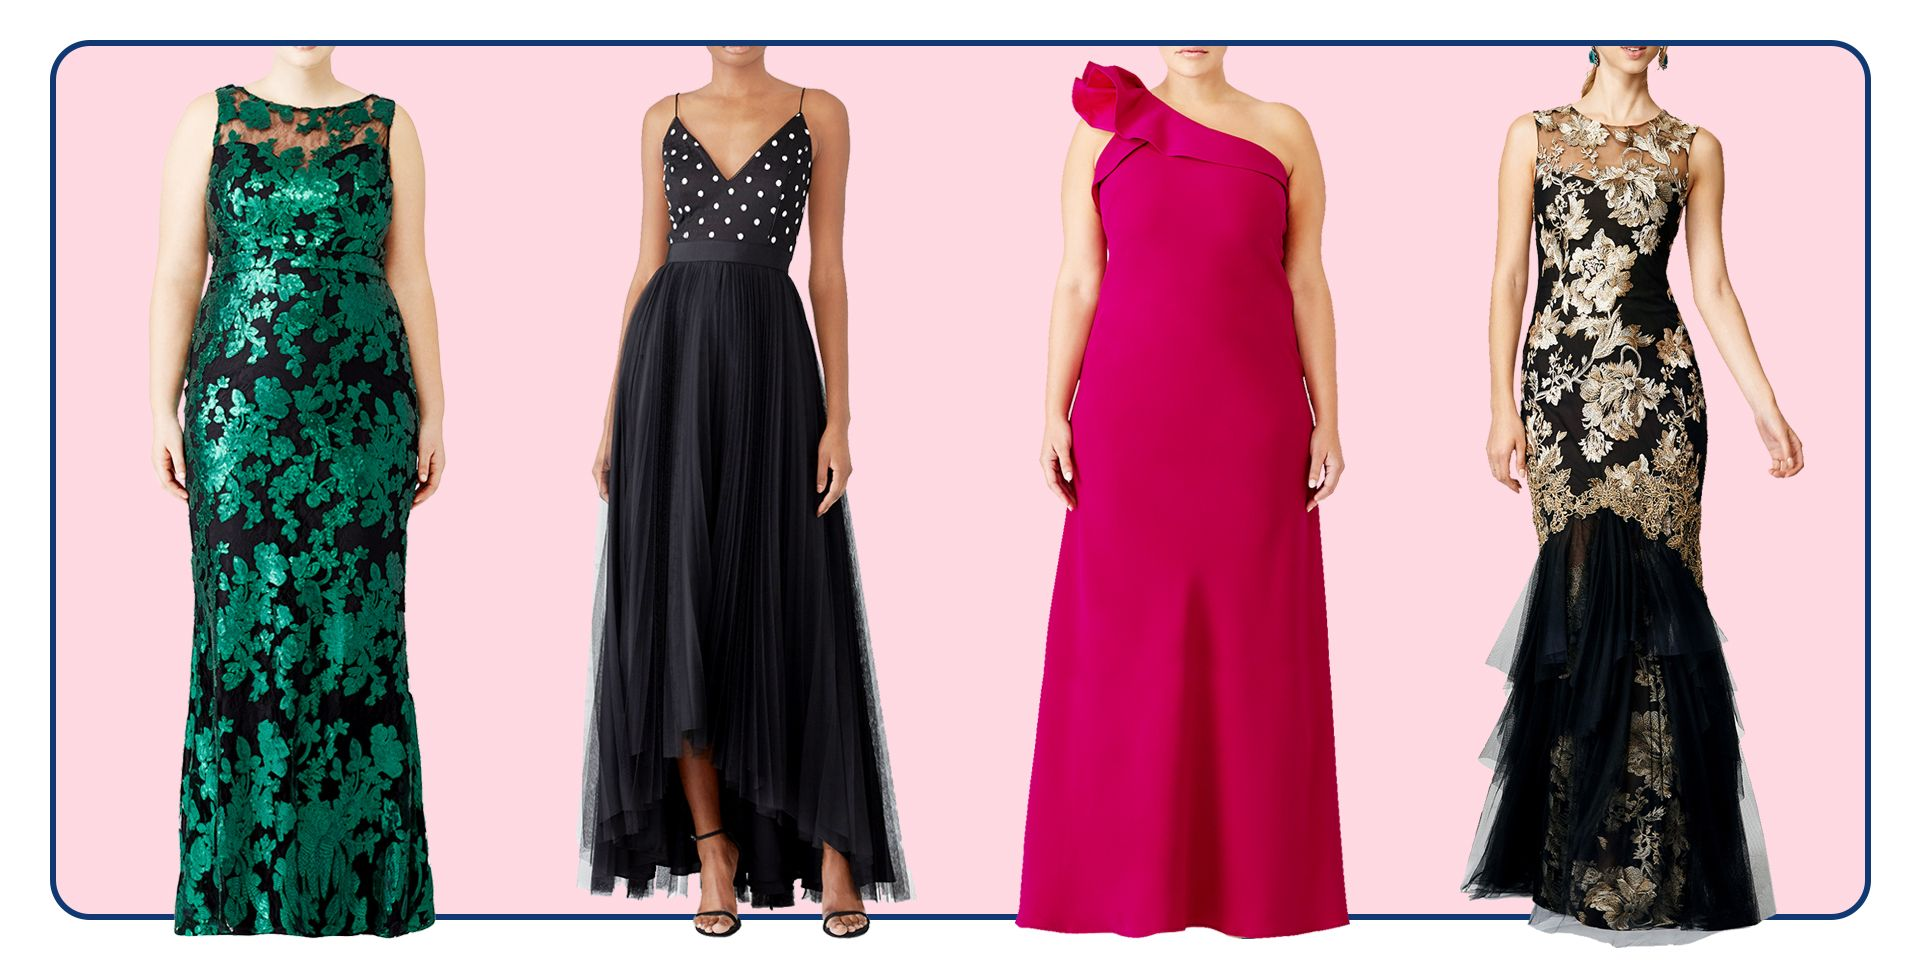 Prom Dress Rental - Where to Rent Prom Dresses for Under $200